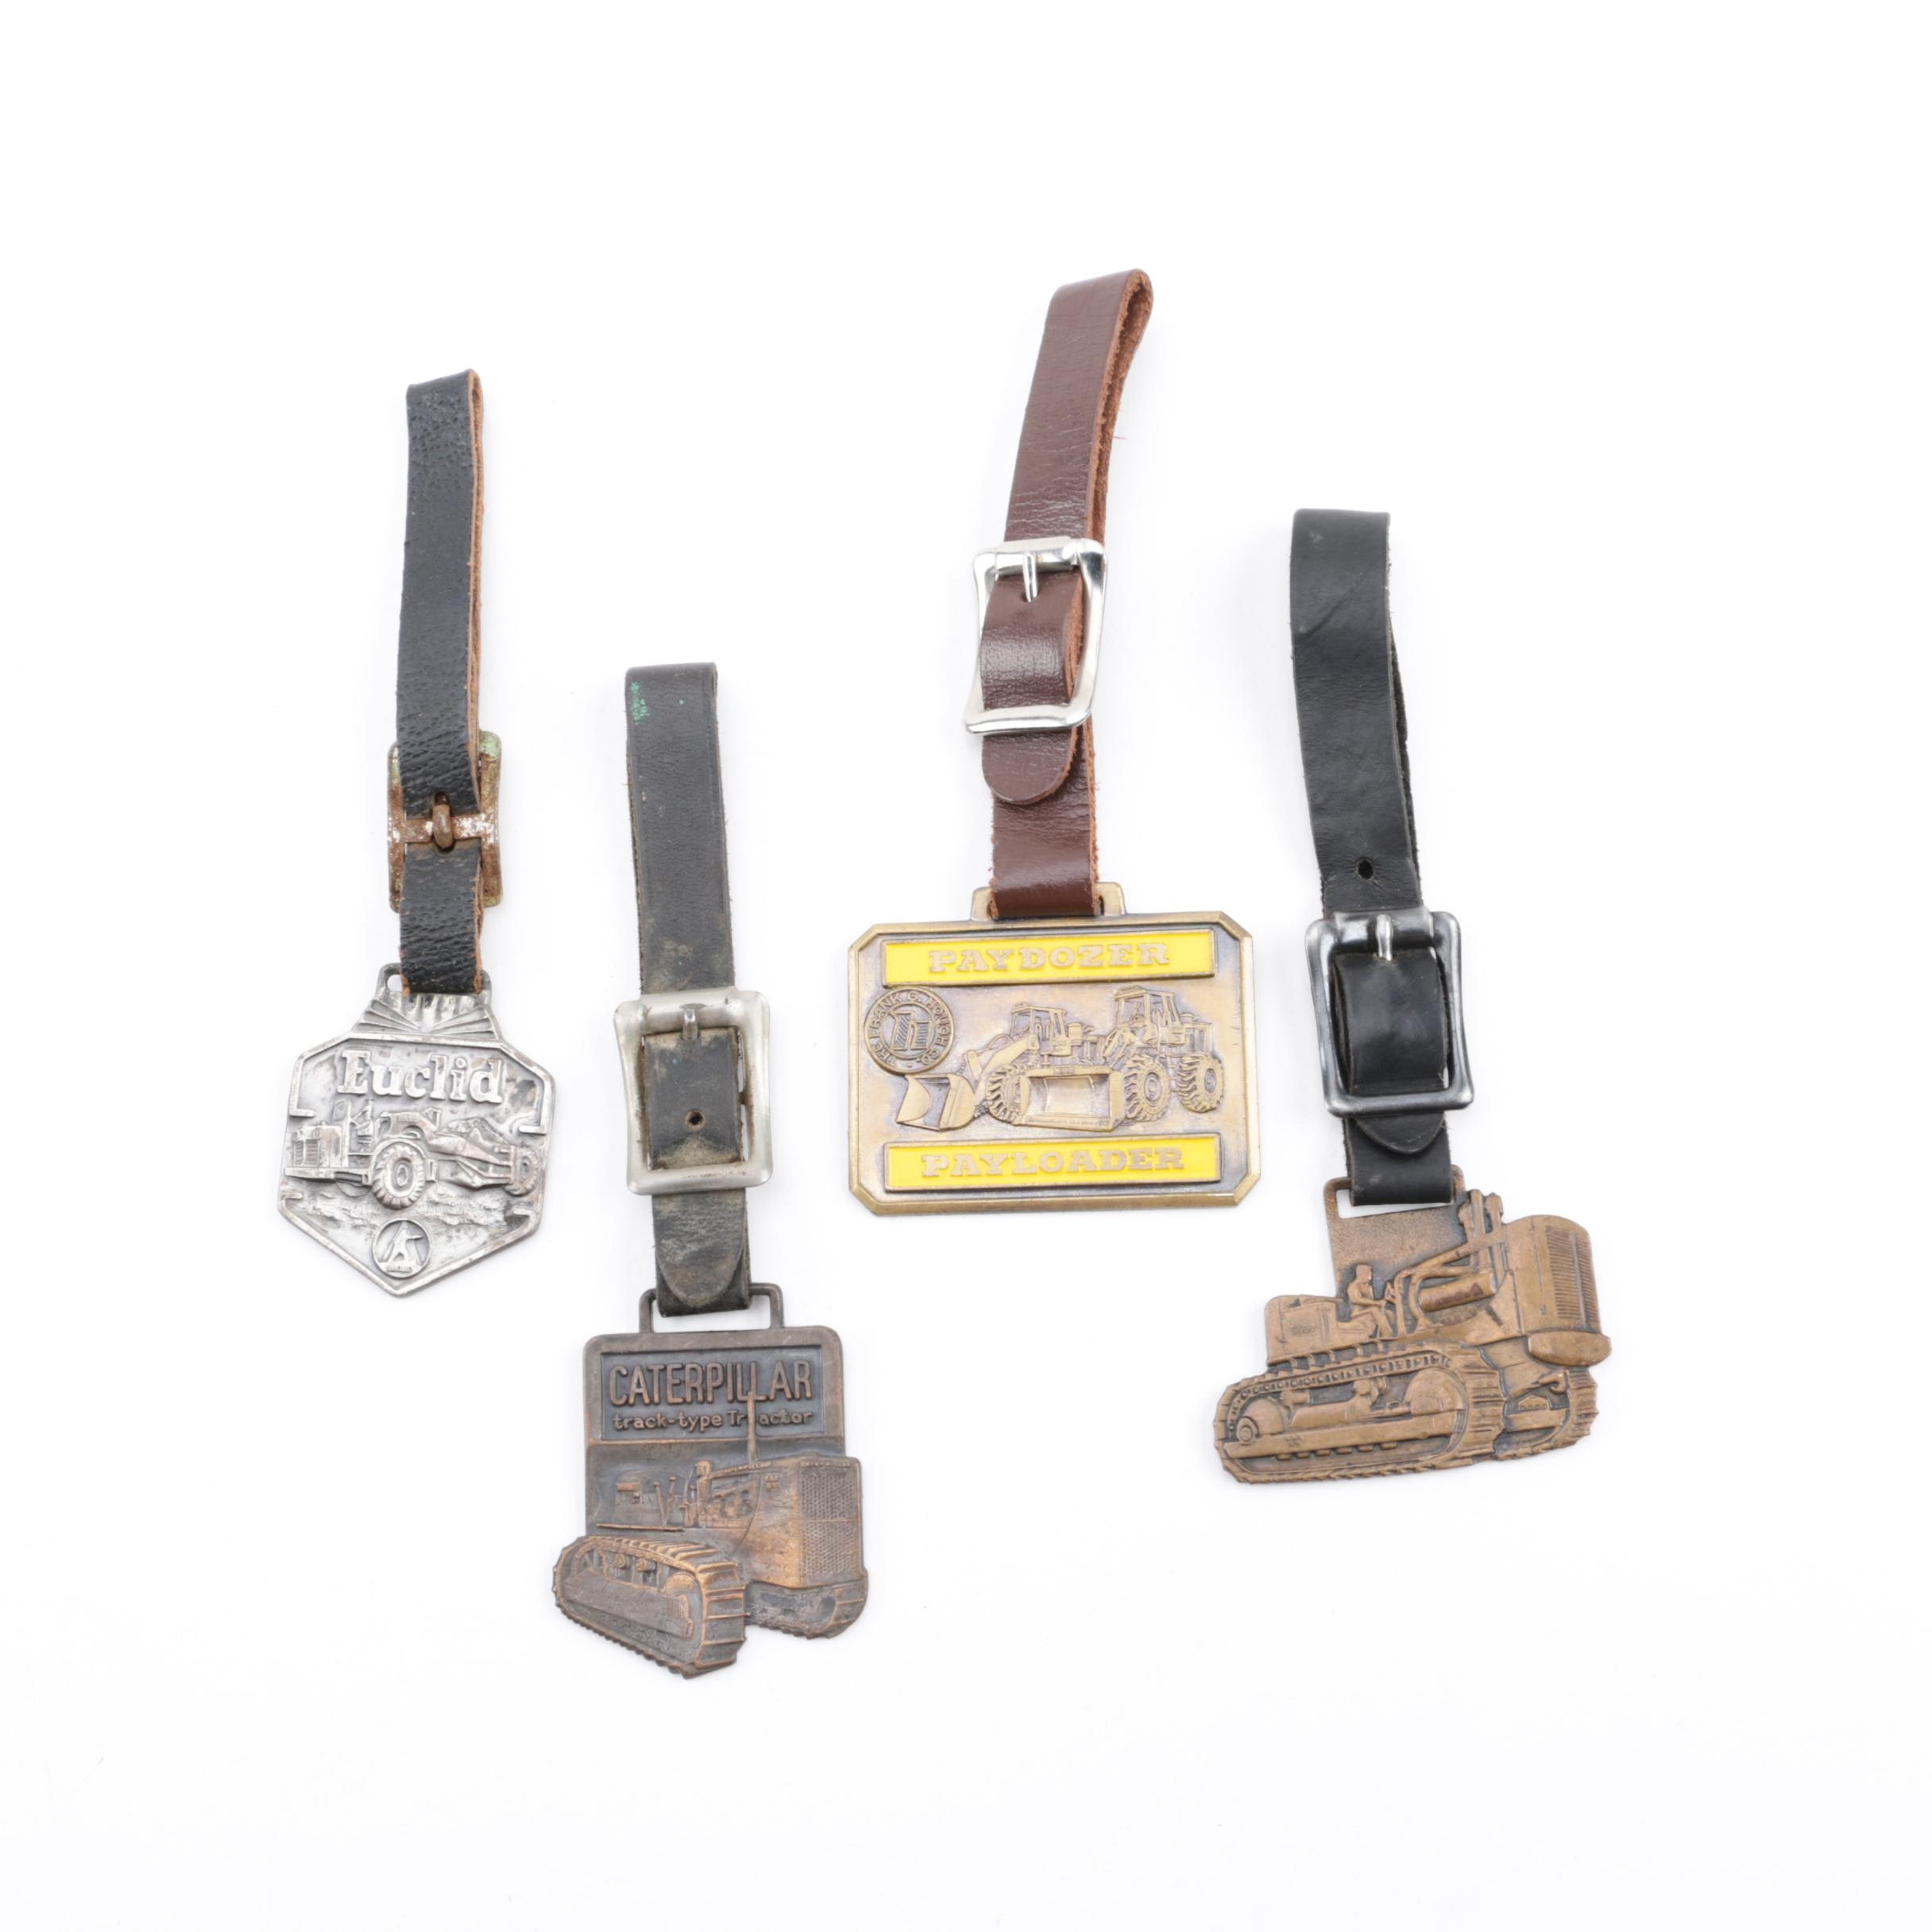 Vintage Heavy Duty Construction Equipment Themed Watch Fobs